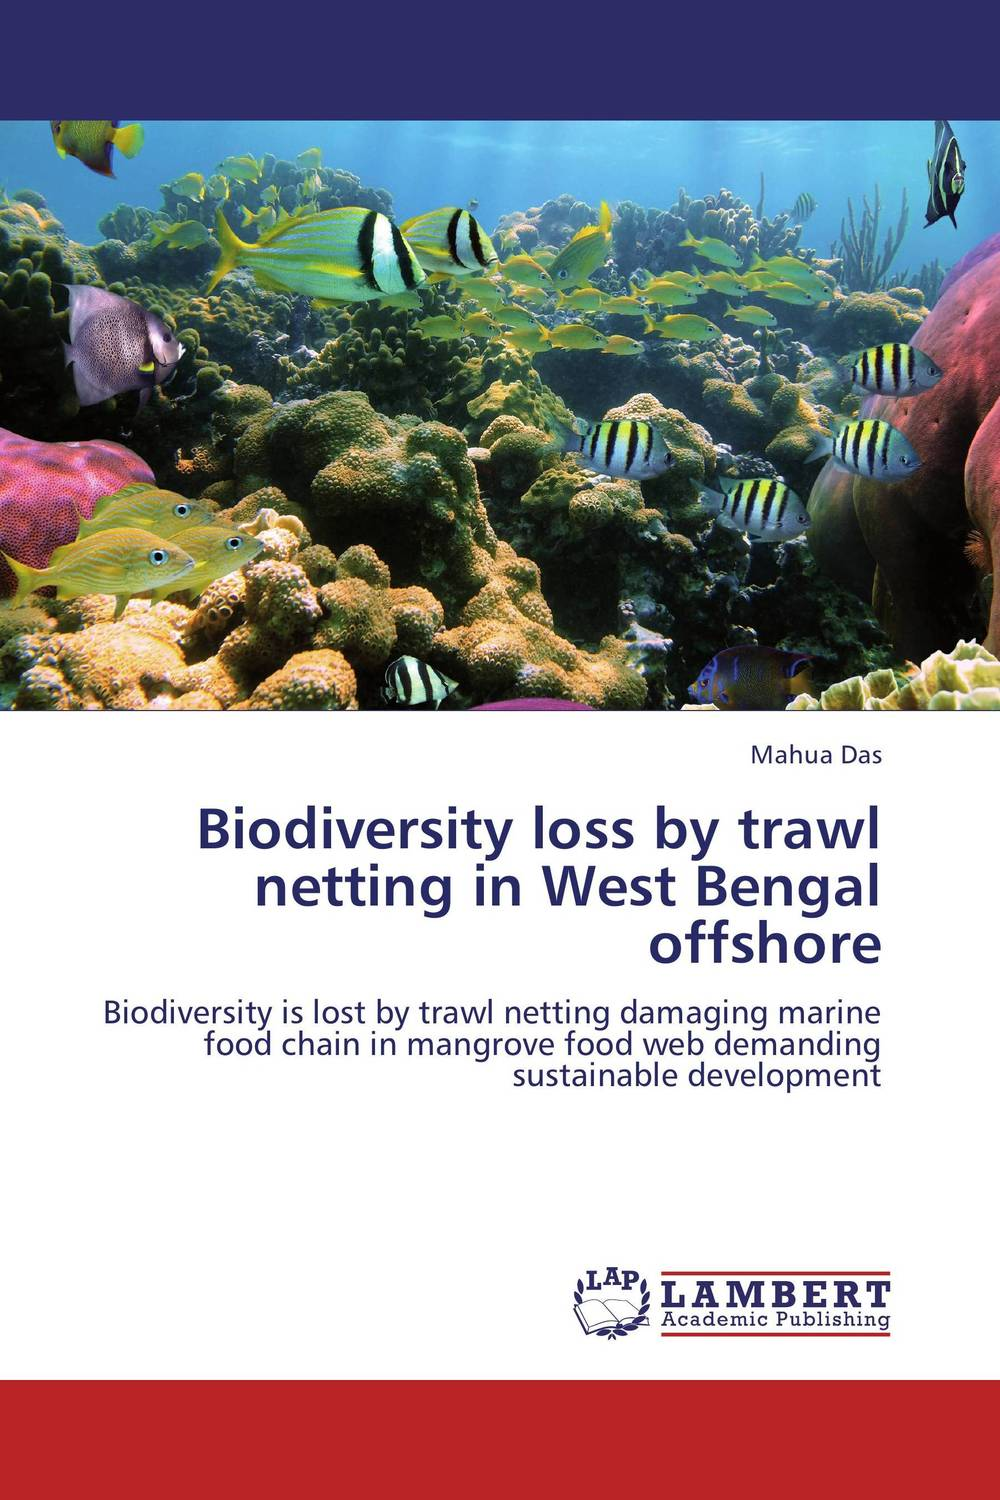 Biodiversity loss by trawl netting in West Bengal offshore offshore